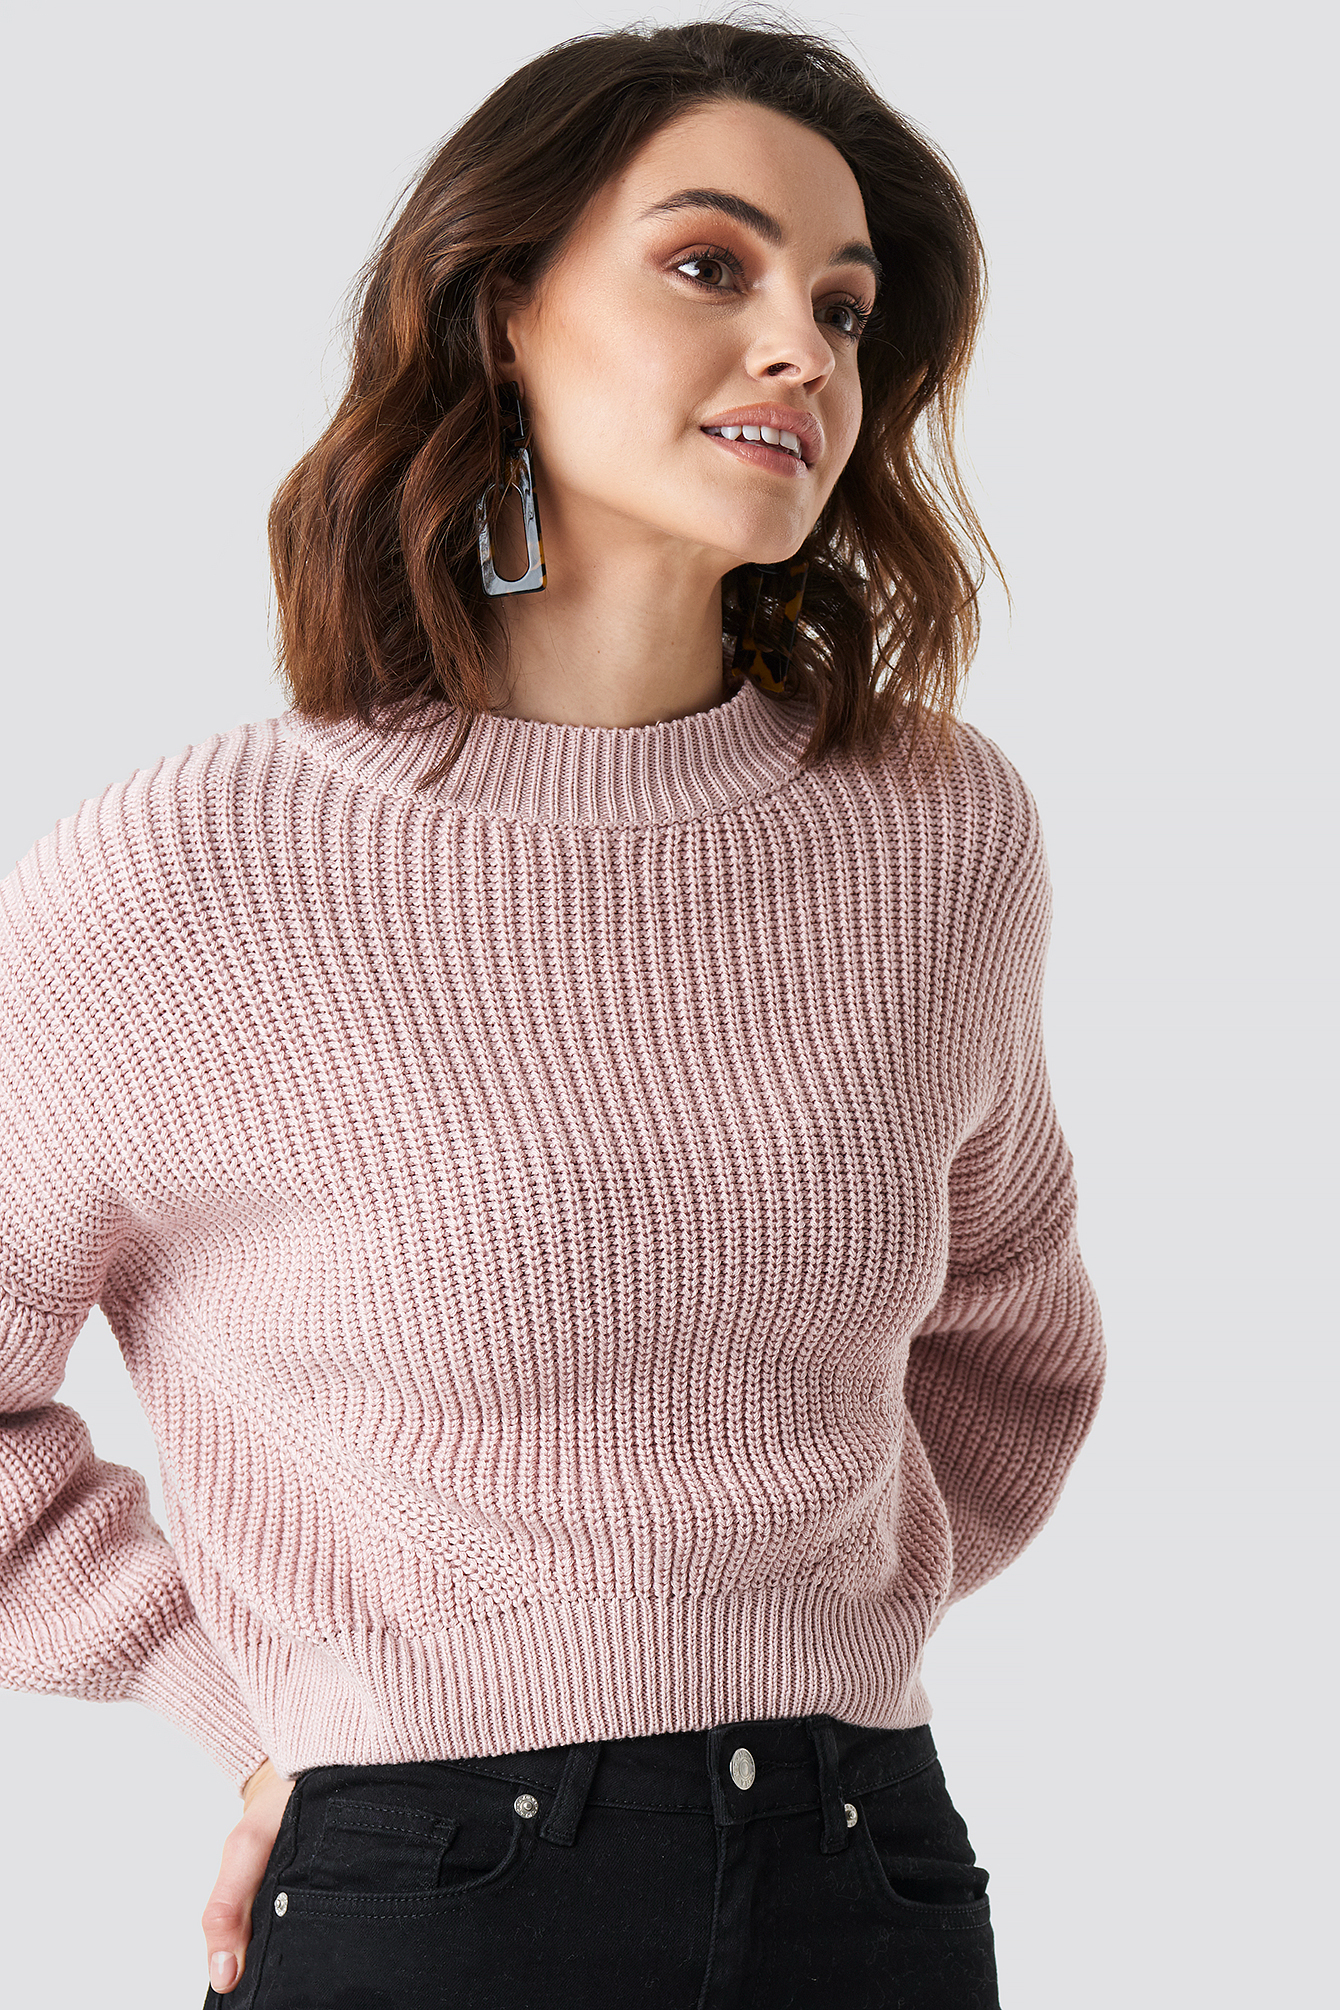 Oversized Sleeve Round Neck Sweater NA-KD.COM